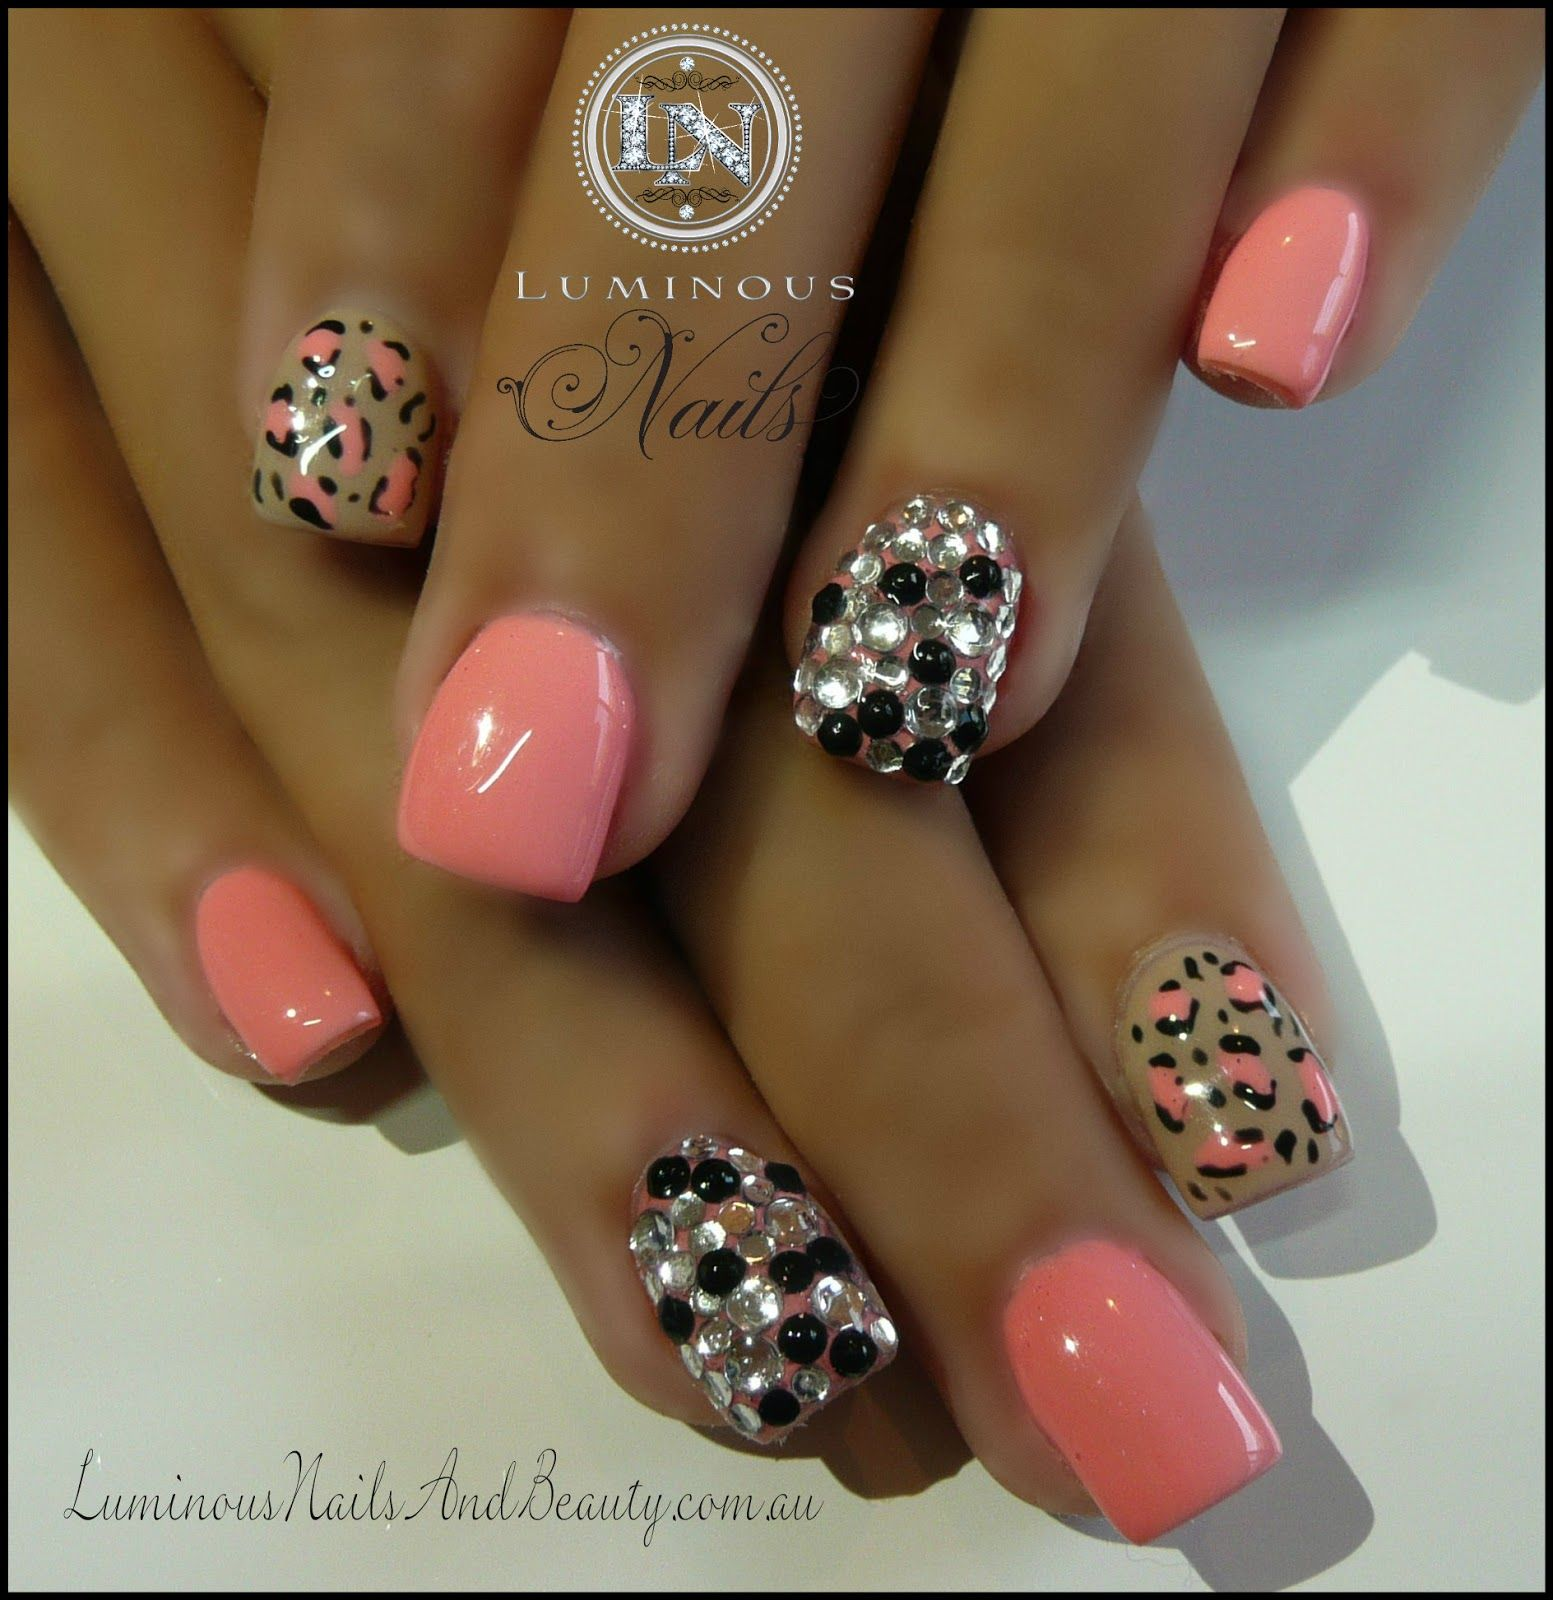 Acrylic nails nails and beauty gold coast queensland for Acrylic nails salon brisbane